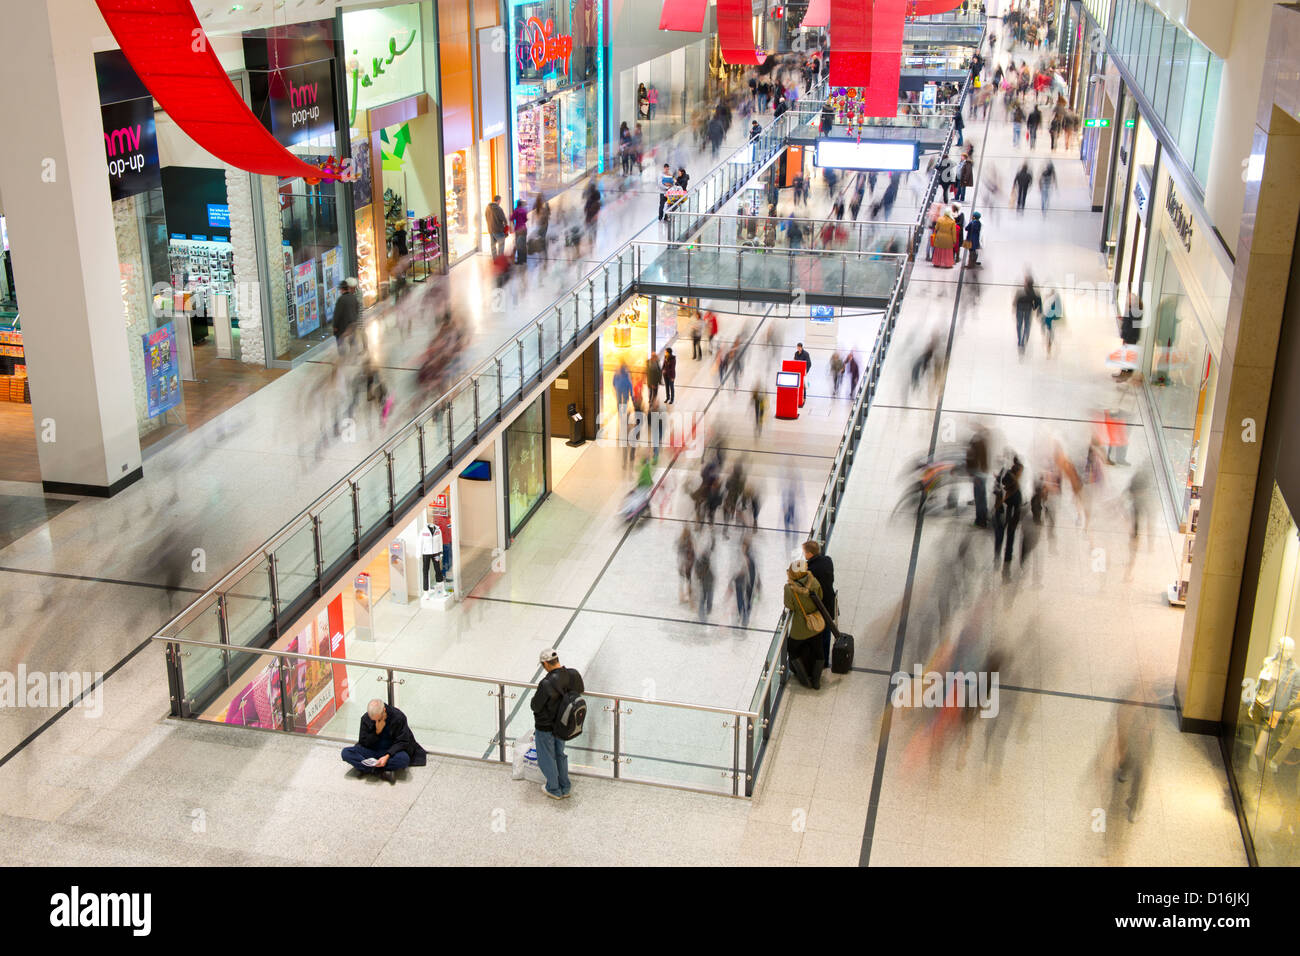 An internal shot of Manchester Arndale shopping centre during the Christmas lead up period. - Stock Image